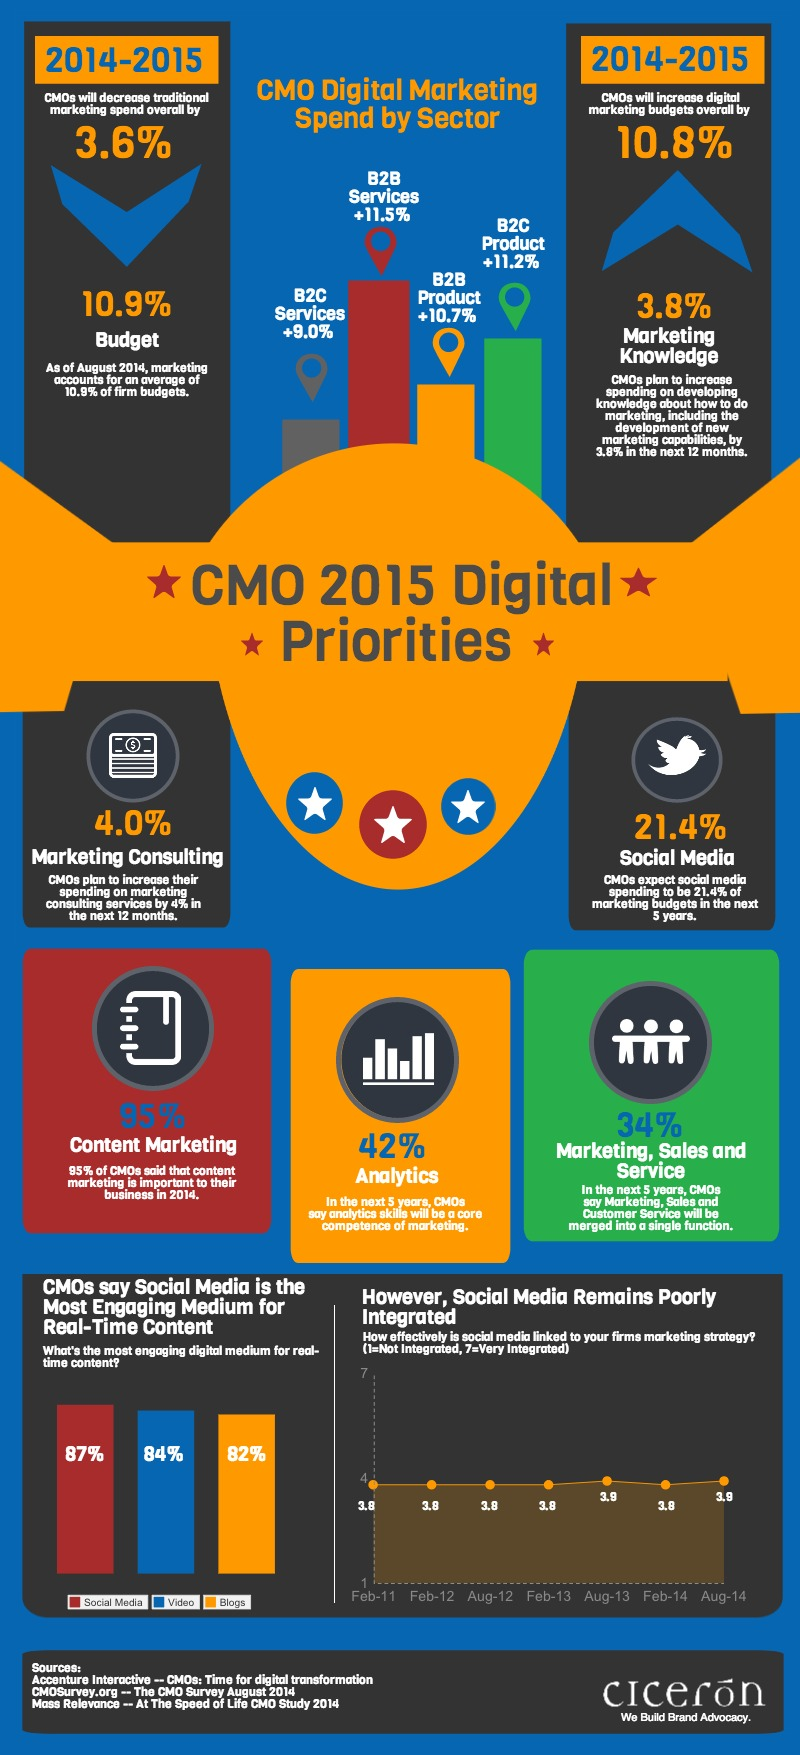 Why Social Media is a Top Priority for CMOs in 2015 (Infographic)